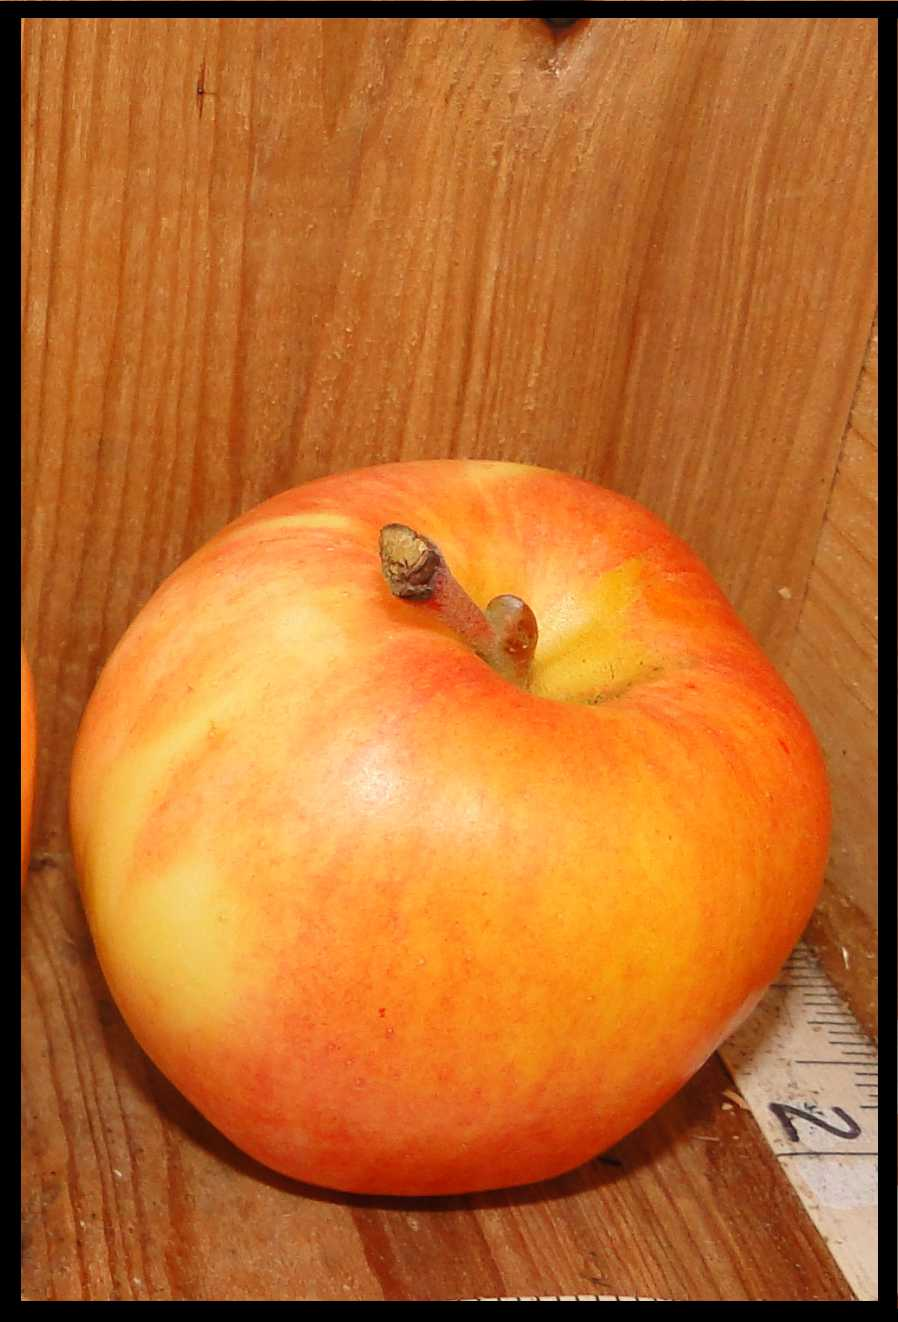 yellow apple with widespread light red blush